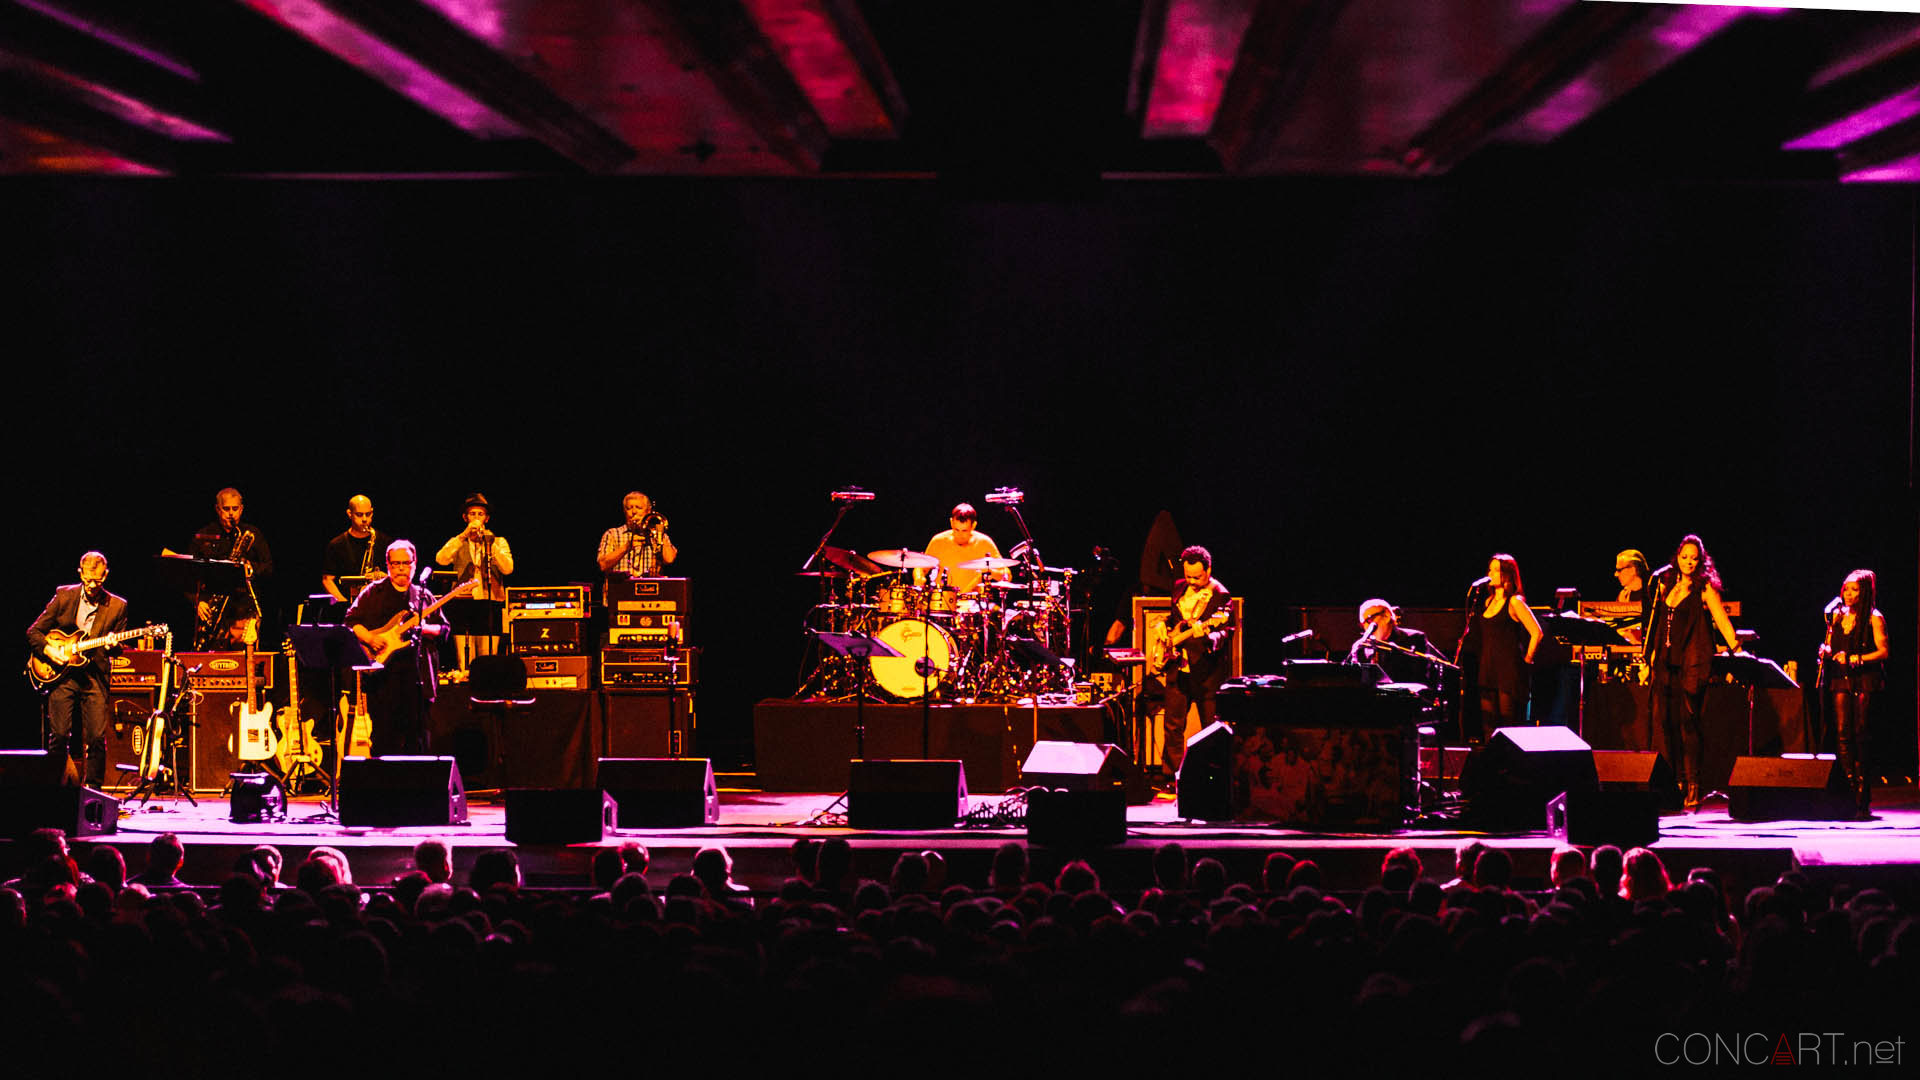 steely_dan_live_old_national_murat_theatre_indianapolis_2013-04